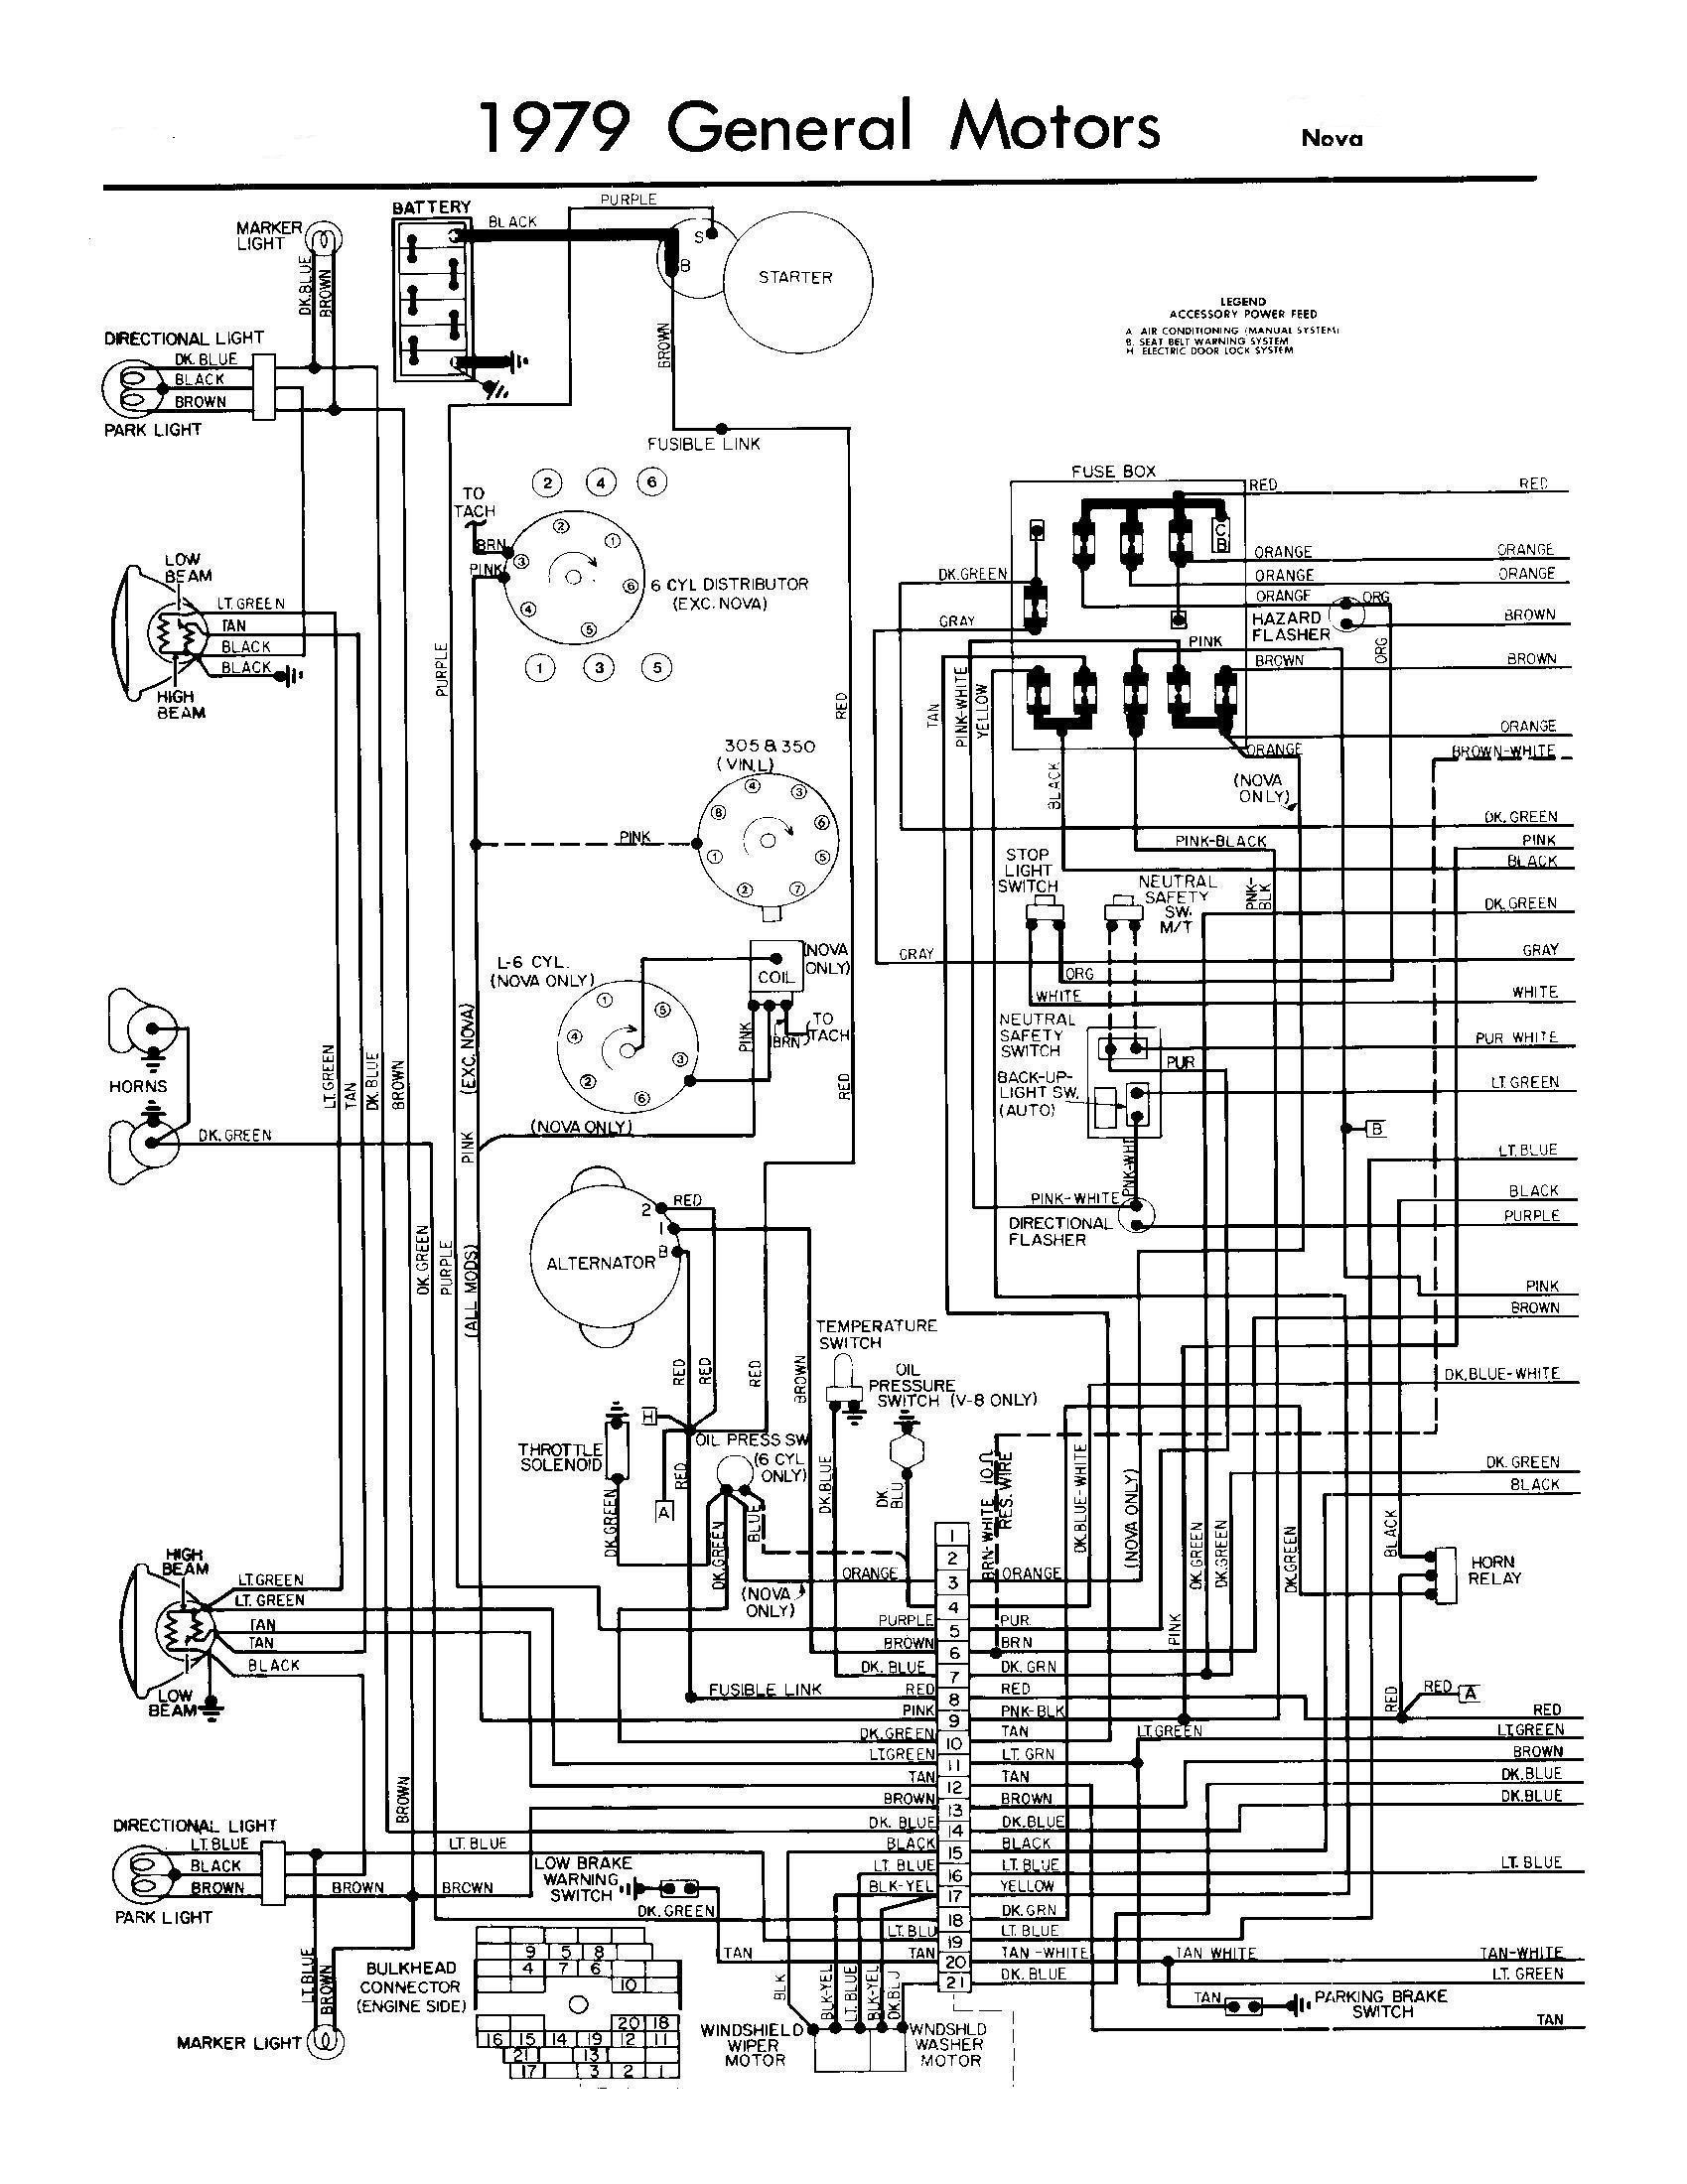 Gm Wiring Schematic 1968 - Wiring Diagram Data on chevelle 4 speed wiring diagram, 1964 chevy 2 wiring diagram, 1968 chevy c 10 wiring diagram,